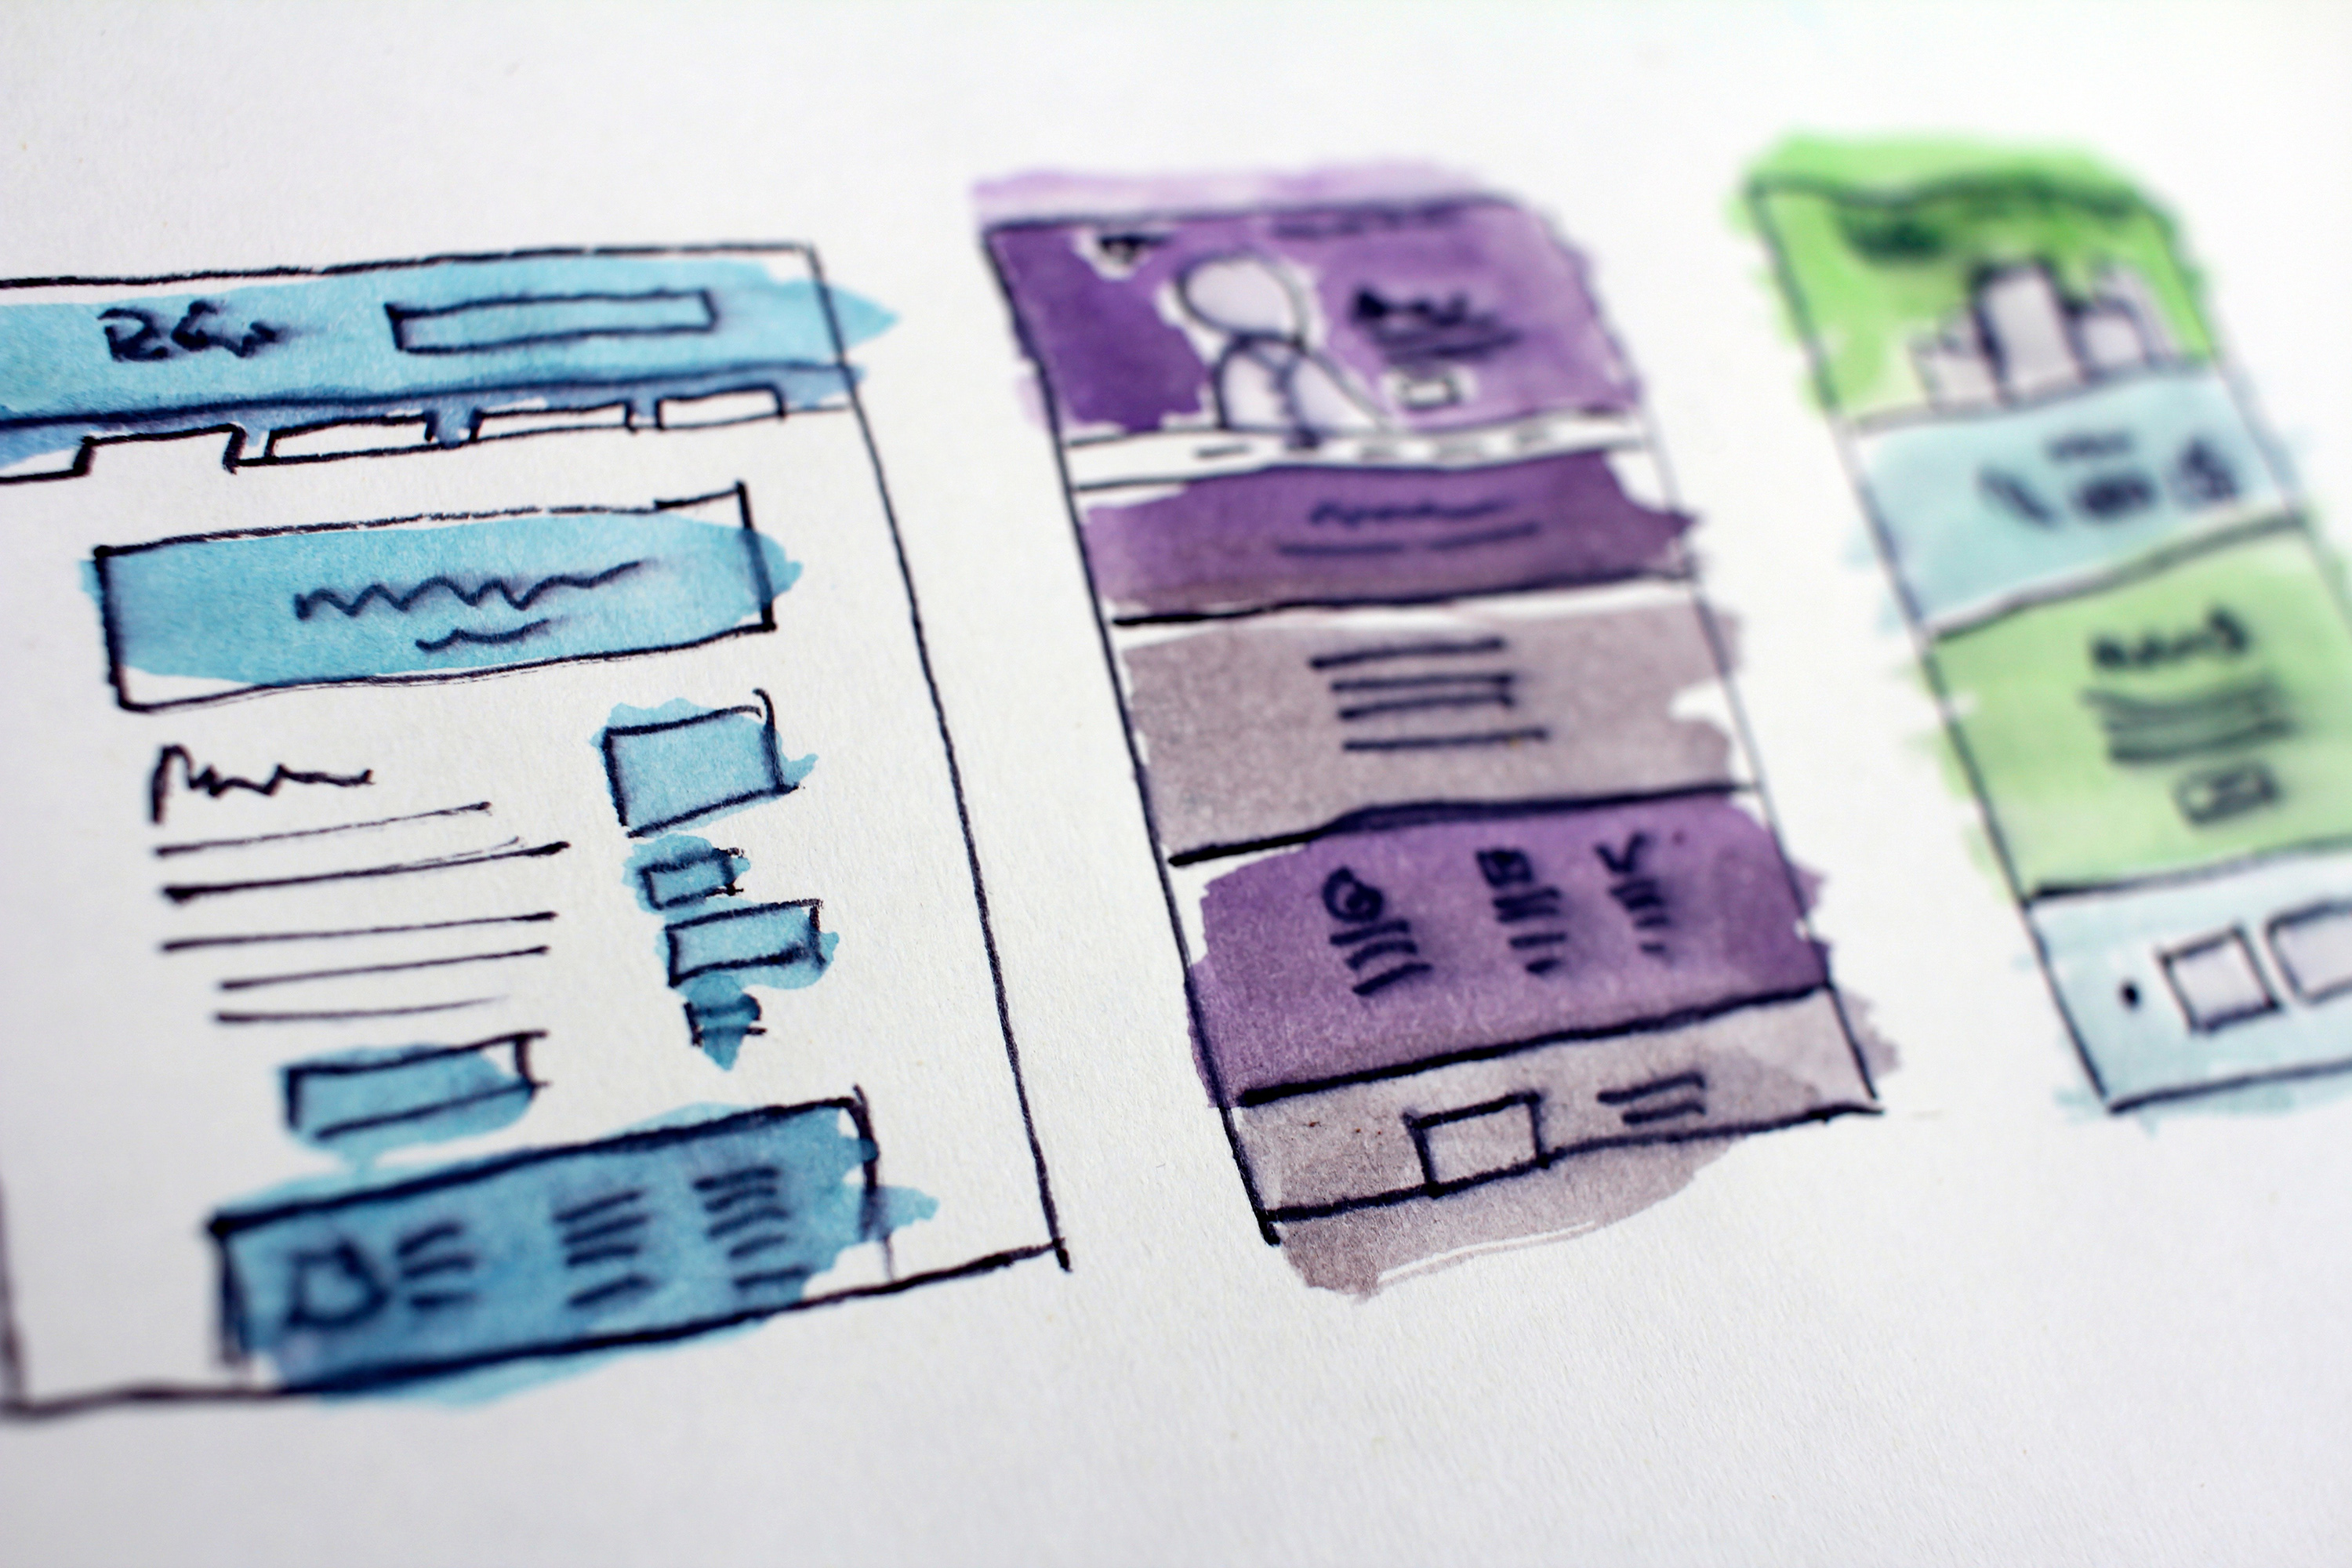 A set of simple wireframes.